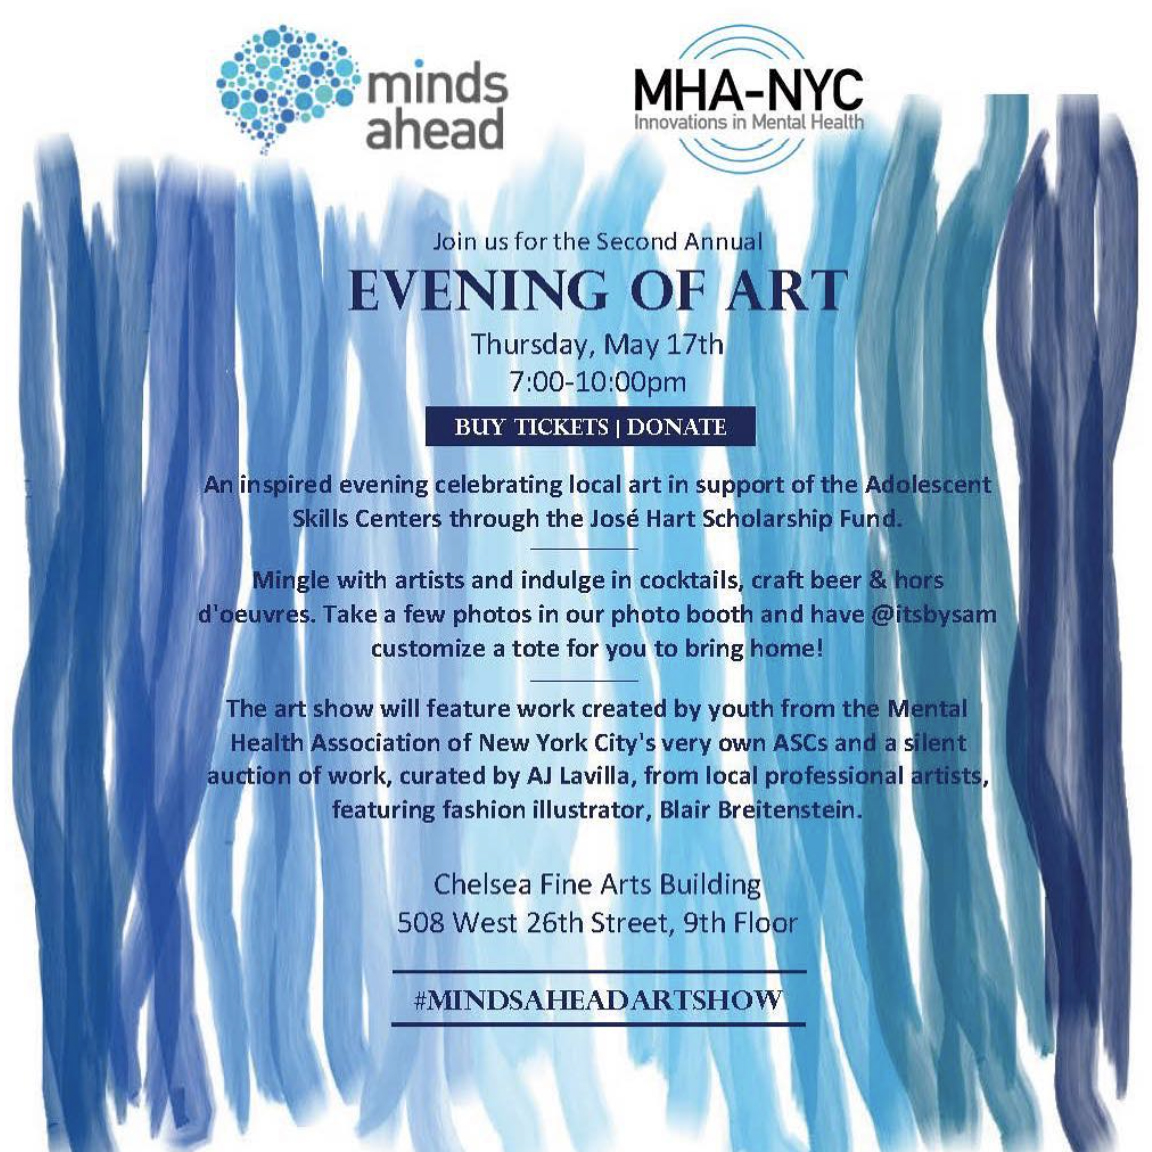 EVENING OF ART - Honored to share my work and curate this year's annual silent art auction to benefit @minds_ahead with my friends and favorite artists: @suetsai @thelazyhustler@emilio_ramos @fluidtoons @ivanorama@consumerart @hektad._official @_murrz@biancadoesnyc @dylonthomasburns@rj.one @mylifein.yellow @madvaillan@jc_bk_nyc @pitchblackart @1471oea@paolo_tolentino @madhatn @tessacattothank you 🙌🏽 for your support #mindsaheadartshow